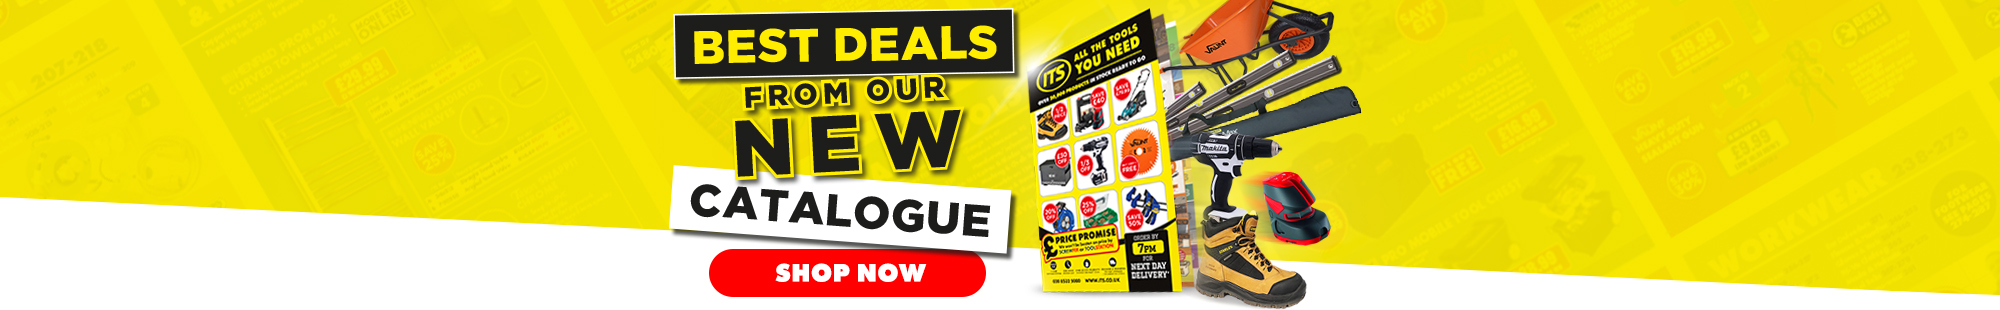 Best Deals From Our New Catalogue